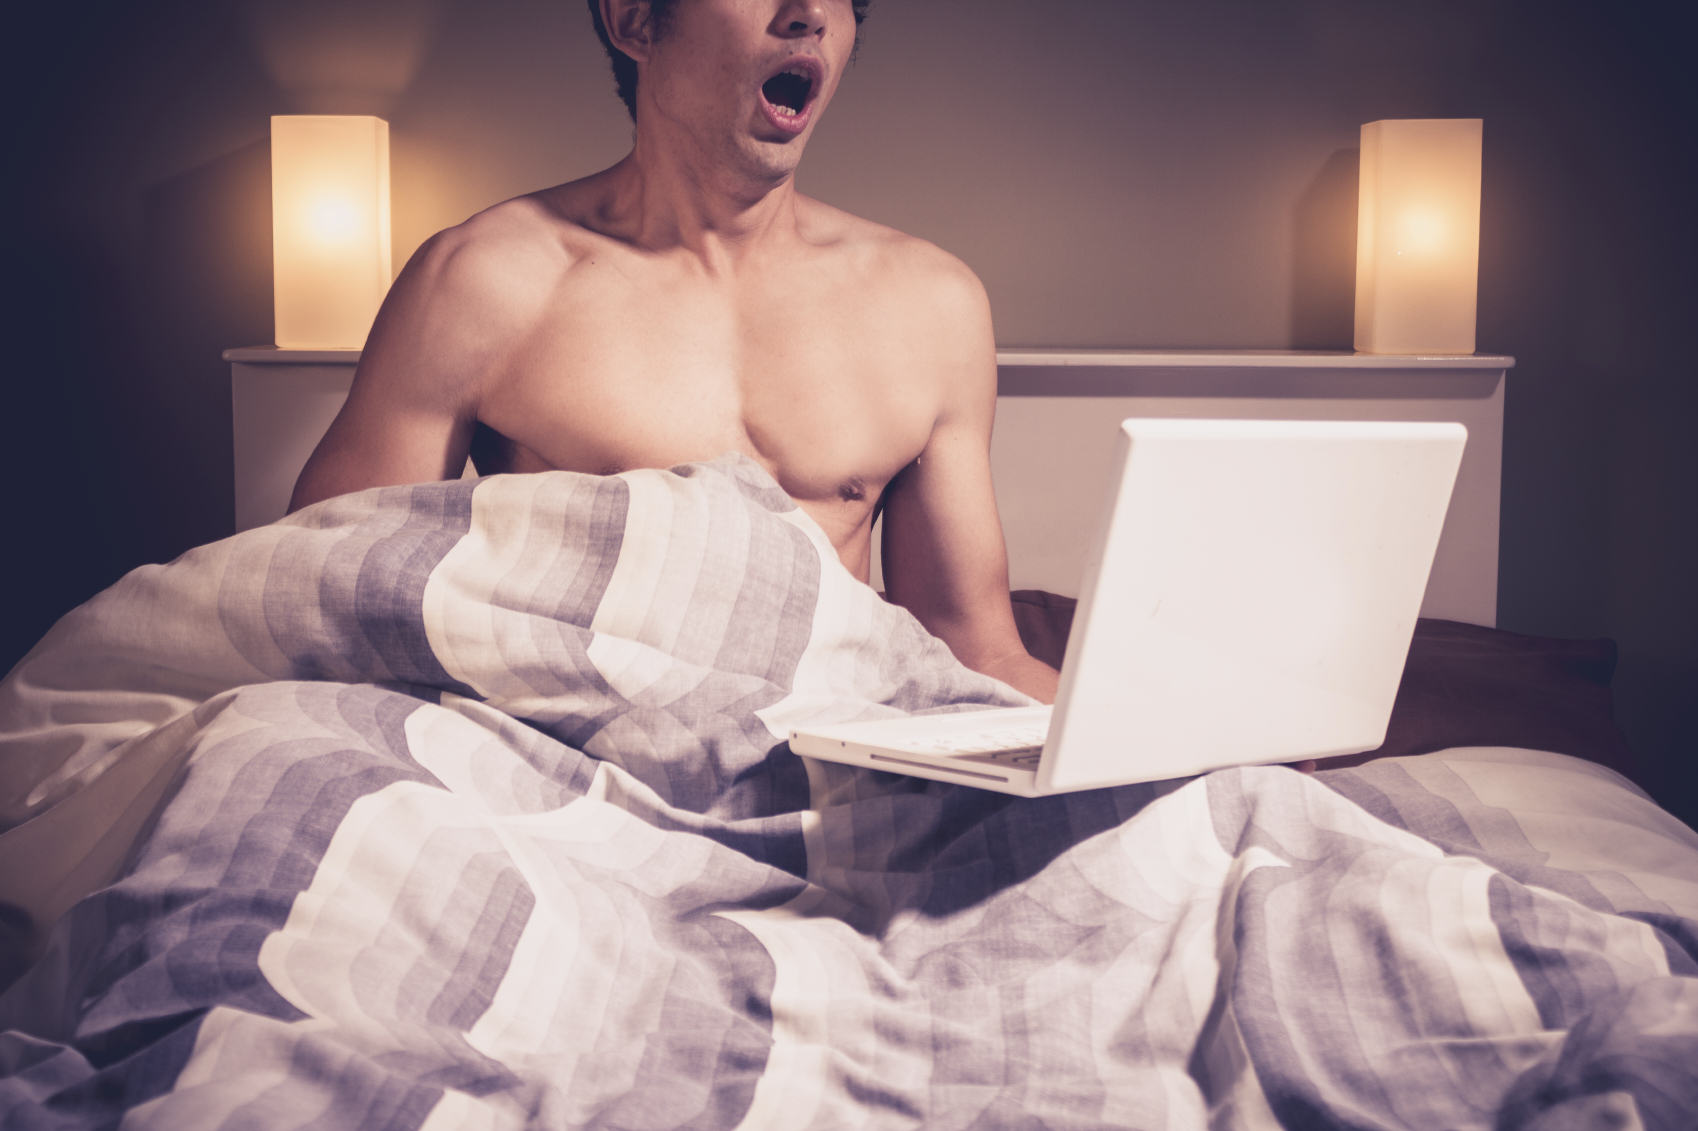 Bad News: Your Porn Browsing History Could Soon Be Available For All To See UNILAD porn hack 160671